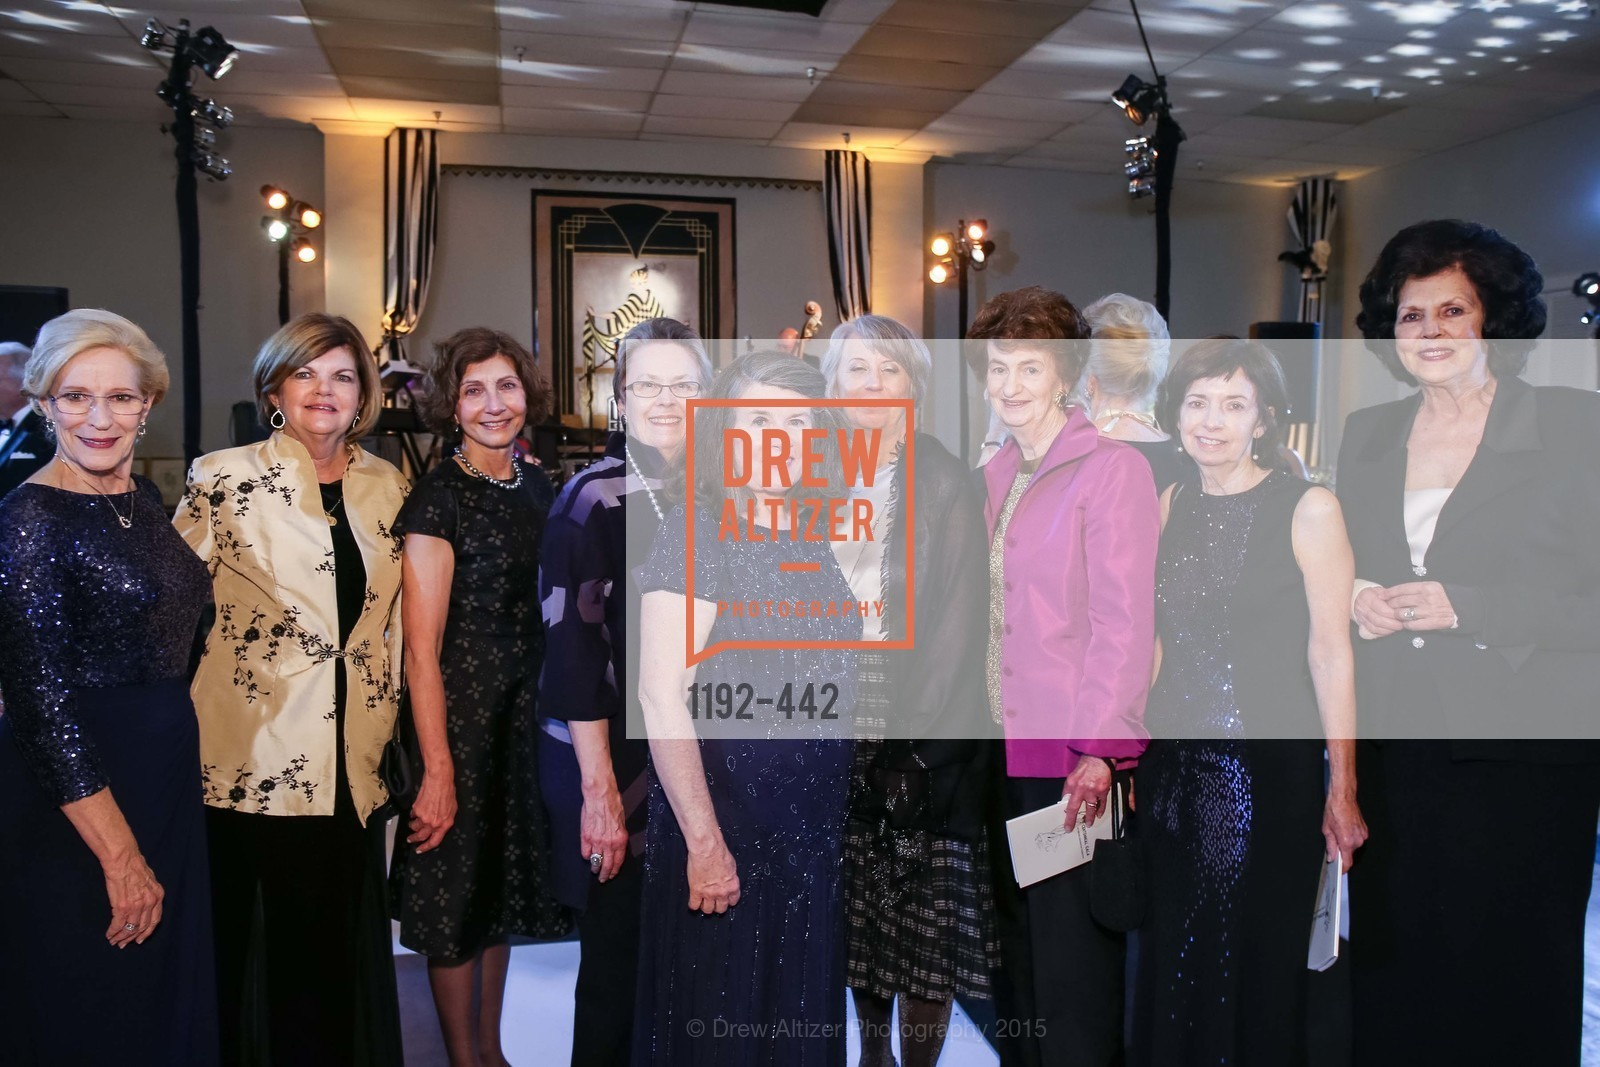 Misty Tyree, Carol Ann Rogers, Karen Rose, Molly Brant, Peggy Mitchell, Barbara Kimport, Margaret Handelman, Maria Hilakos Hanke, Helene Ettelson, Metropolitan Club Presents THE CENTENNIAL GALA, Metropolitan Club. 640 Sutter Street, November 5th, 2015,Drew Altizer, Drew Altizer Photography, full-service agency, private events, San Francisco photographer, photographer california